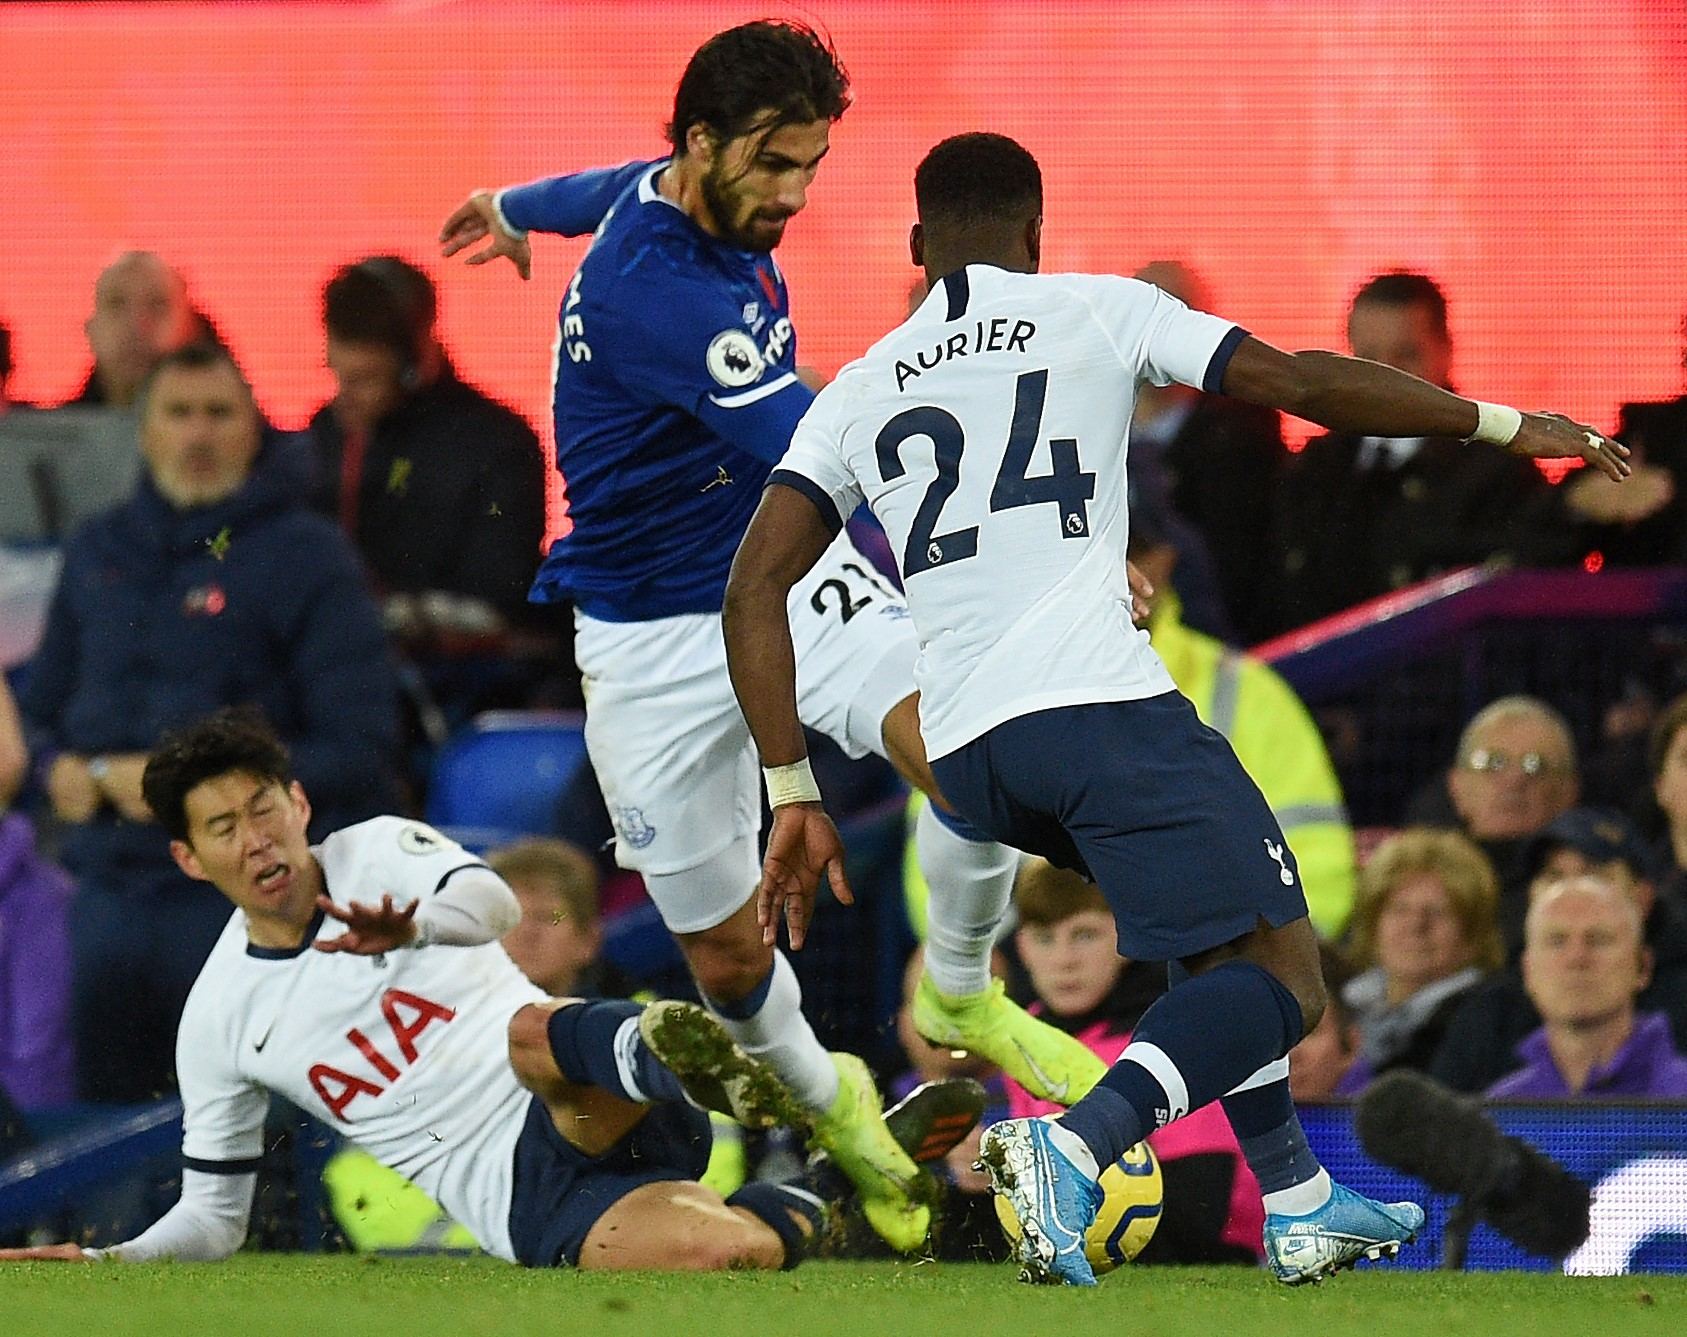 Son's challenge resulted in Gomes' suffering a serious ankle injury